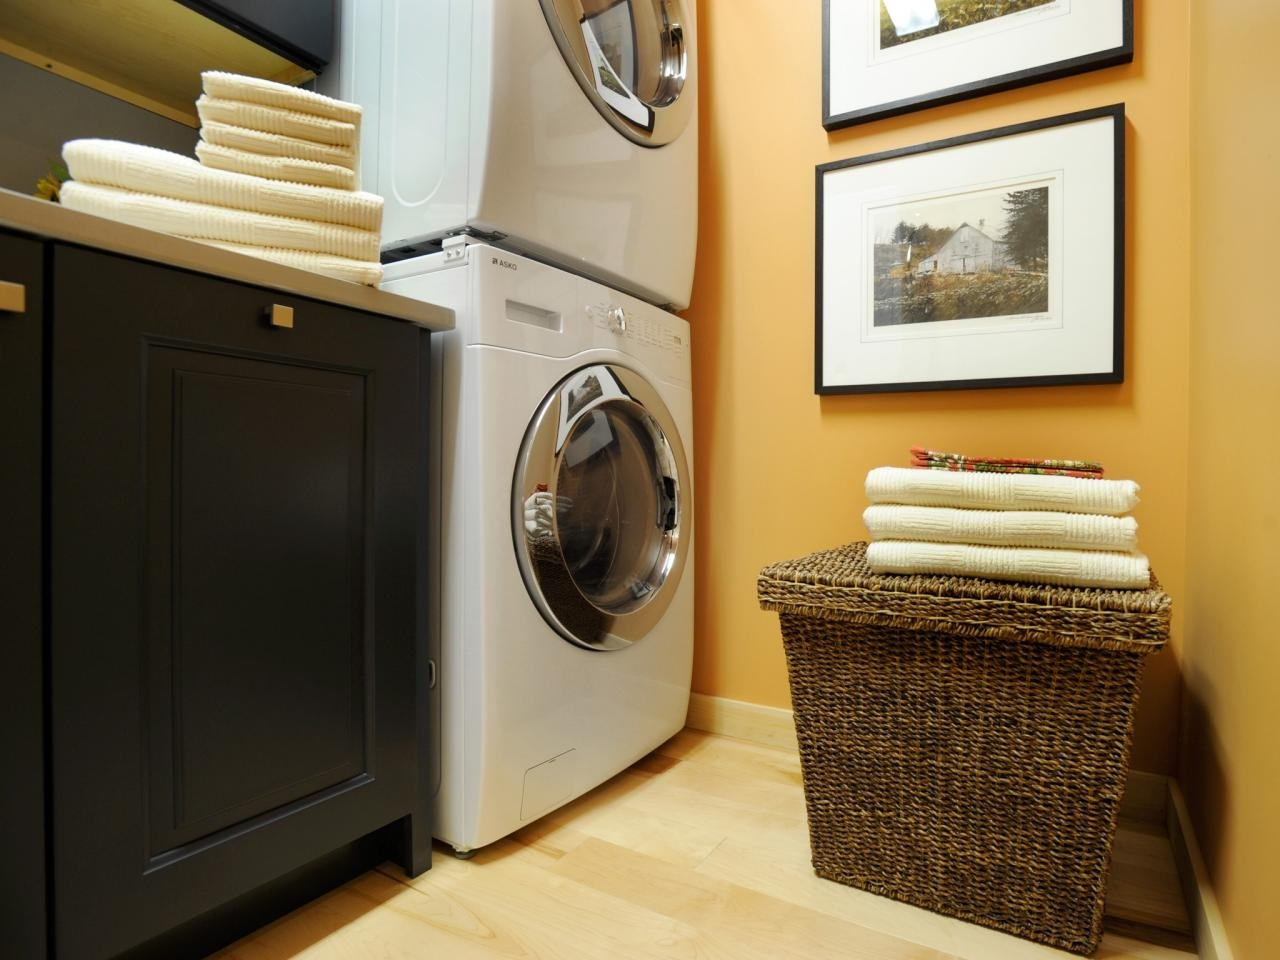 10 Perfect Laundry Room Ideas Small Space %name